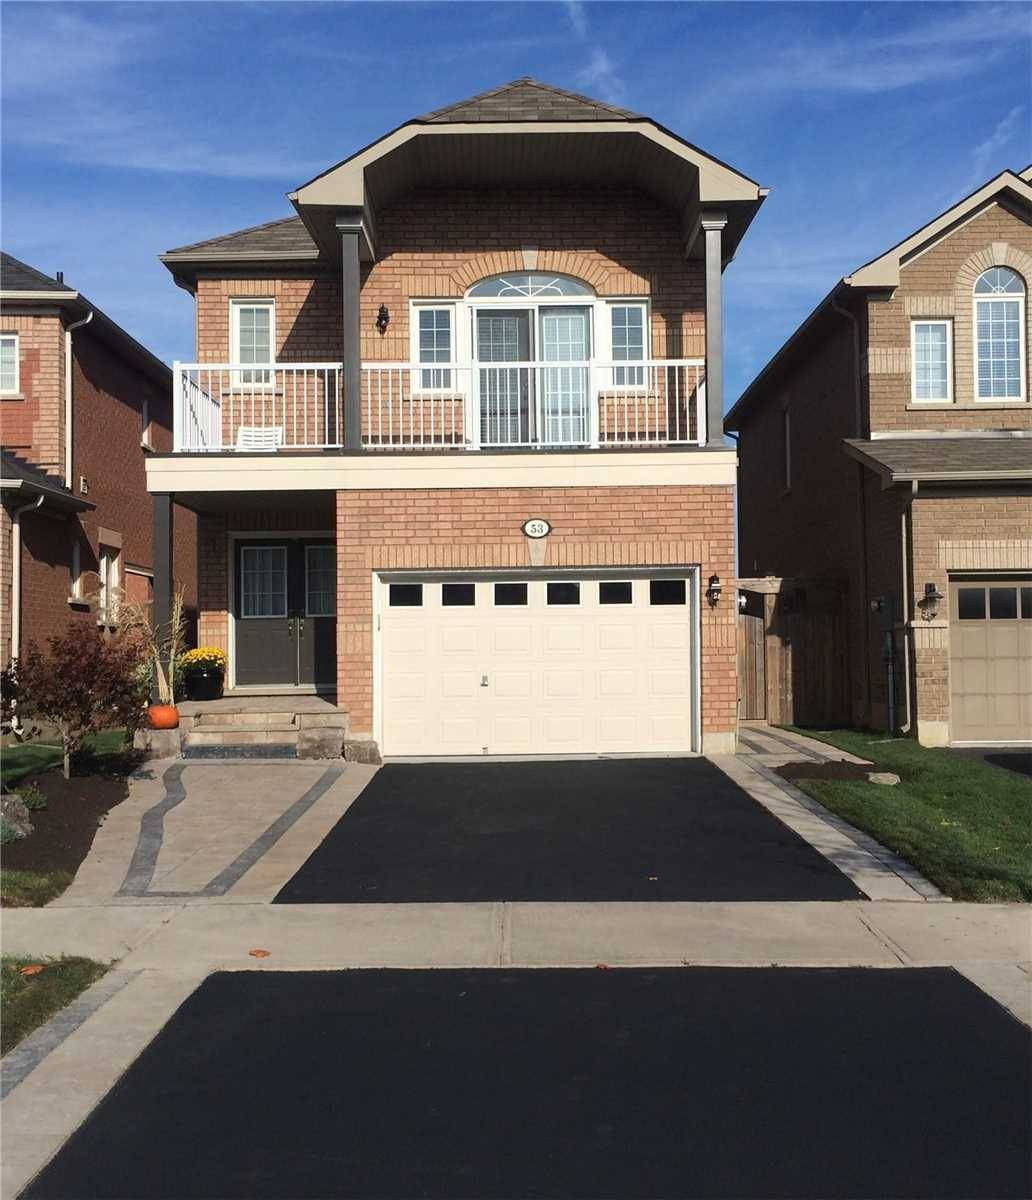 Eagleview Apartments: 53 Eagleview Way, Halton Hills — For Rent @ $2,700